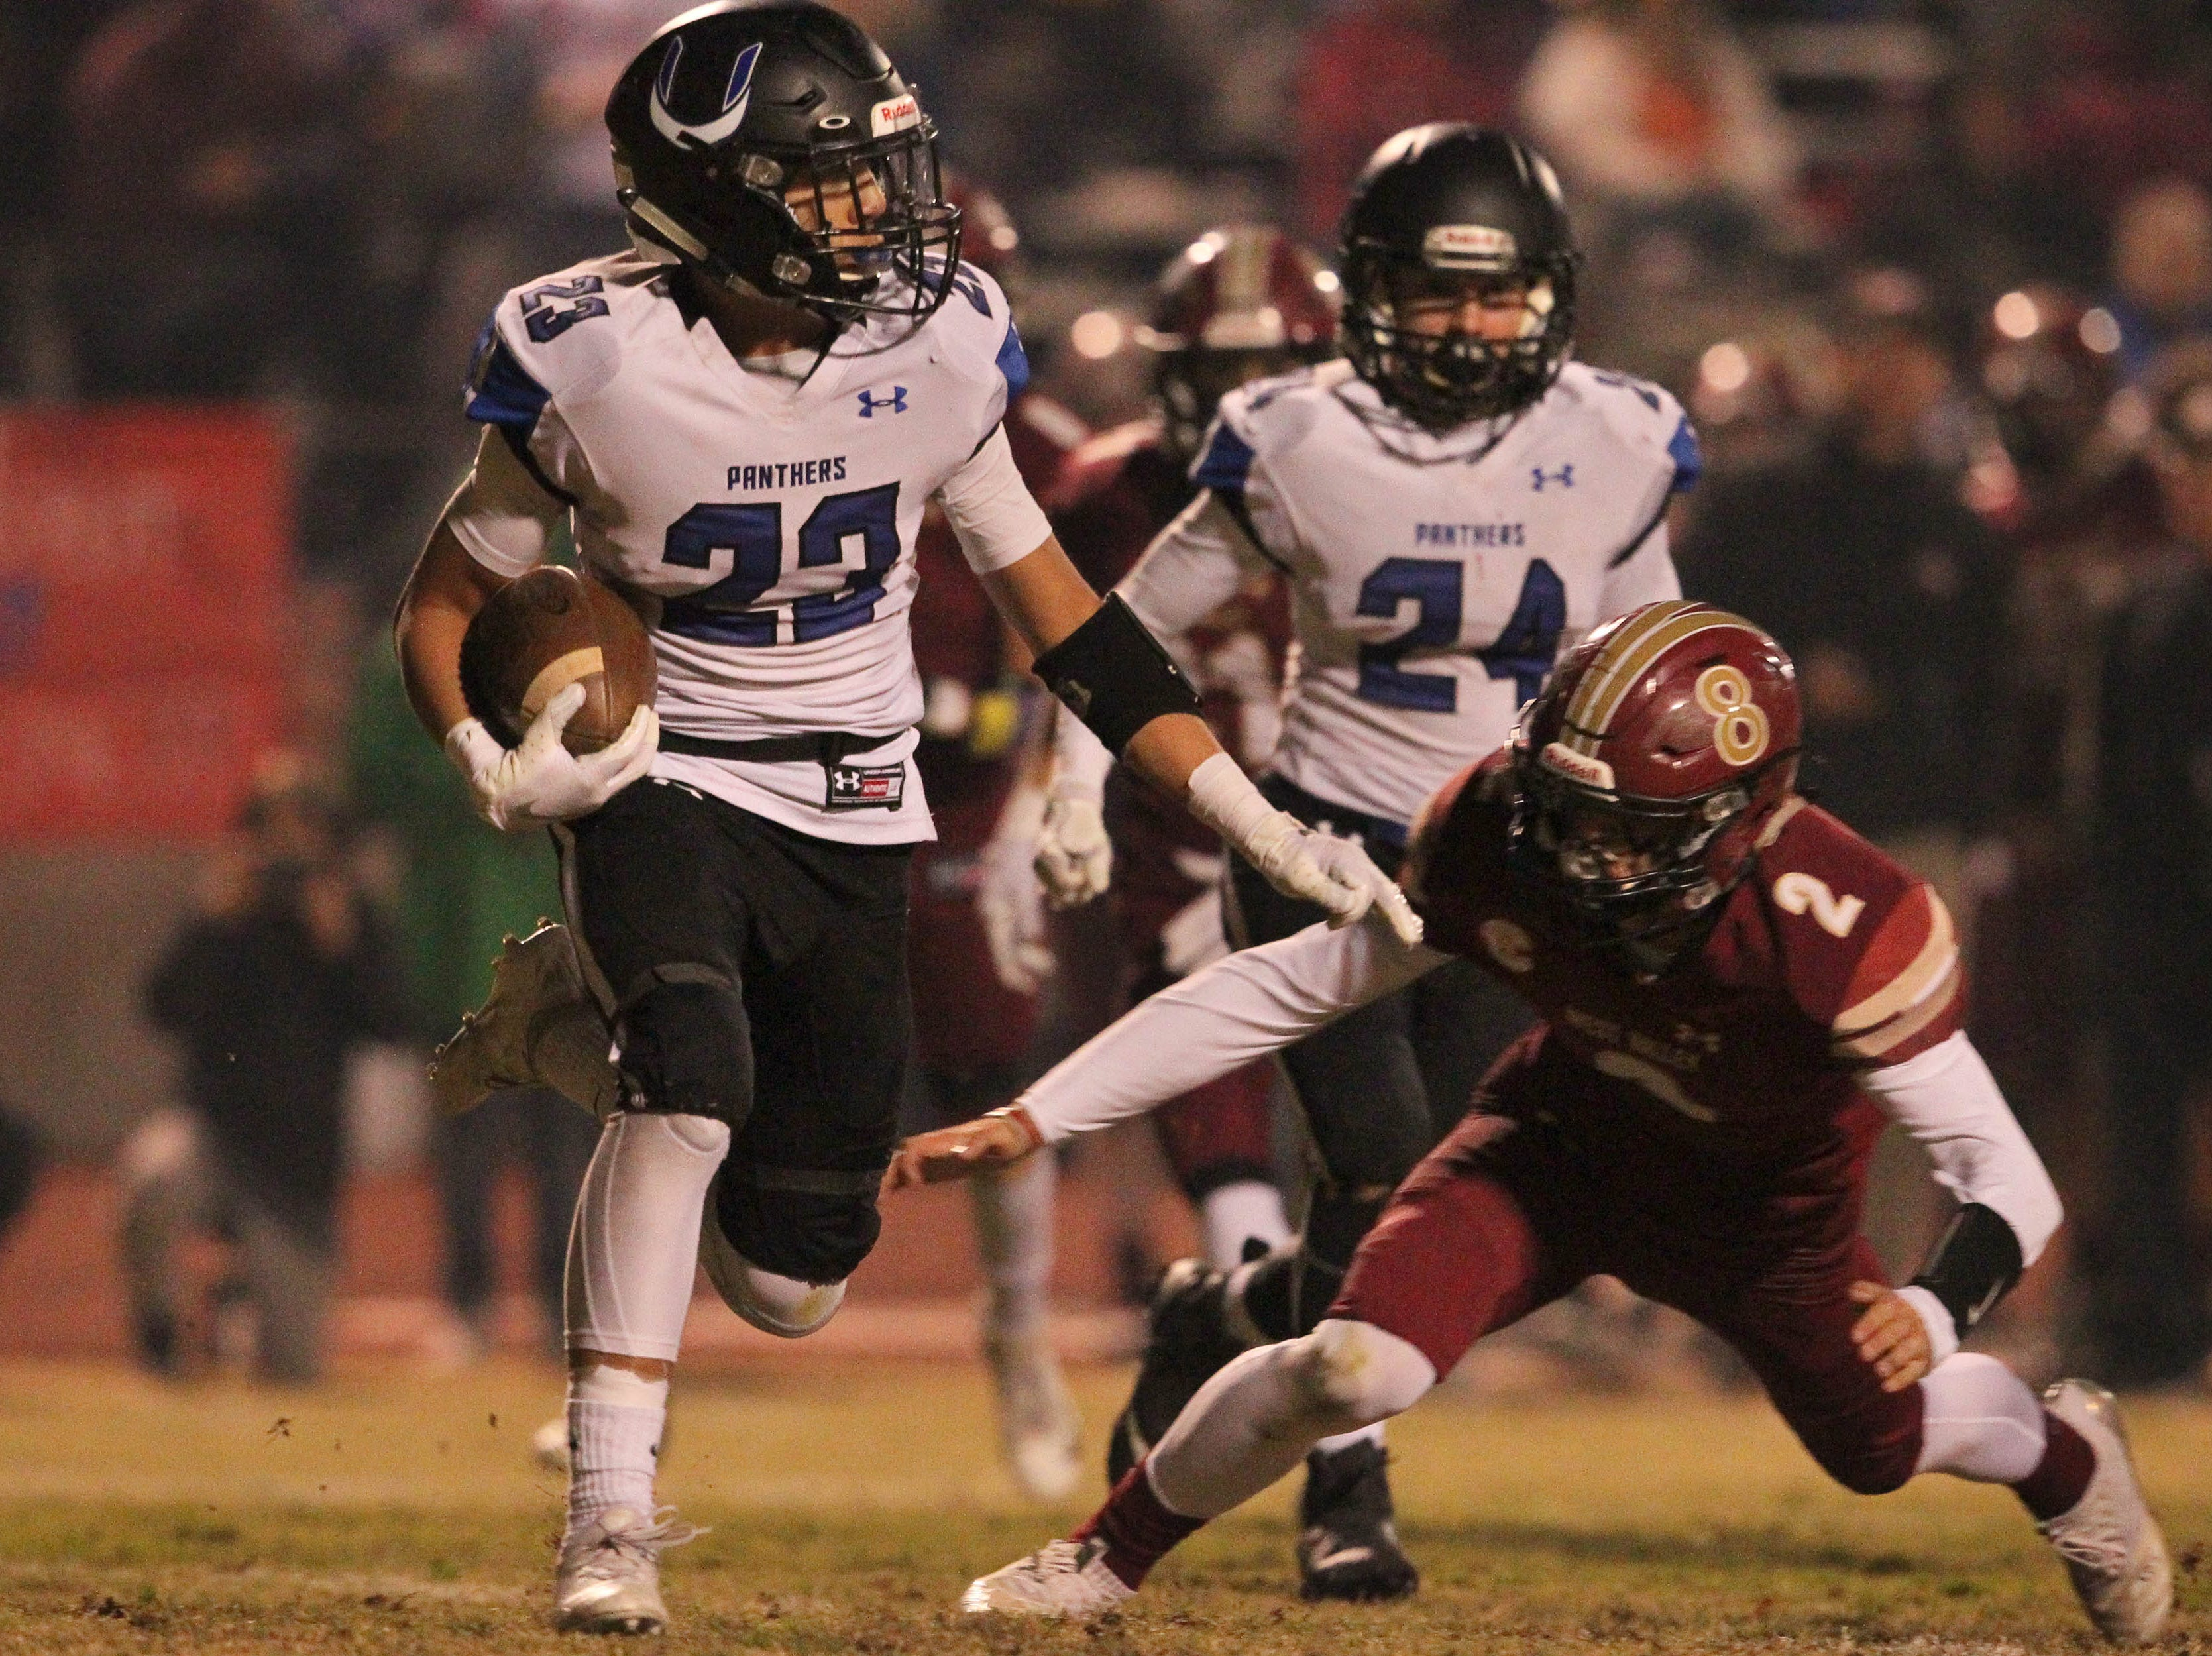 U-Prep WR, Kaden Jones (23) tries to run for a 1st down against West Valley's Devin Low (2) in the 1st quarter on Friday, Nov. 9.  The Eagles defeated the Panthers, 55 -6, at home to advance to the 2nd round against Lassen on Nov. 16.